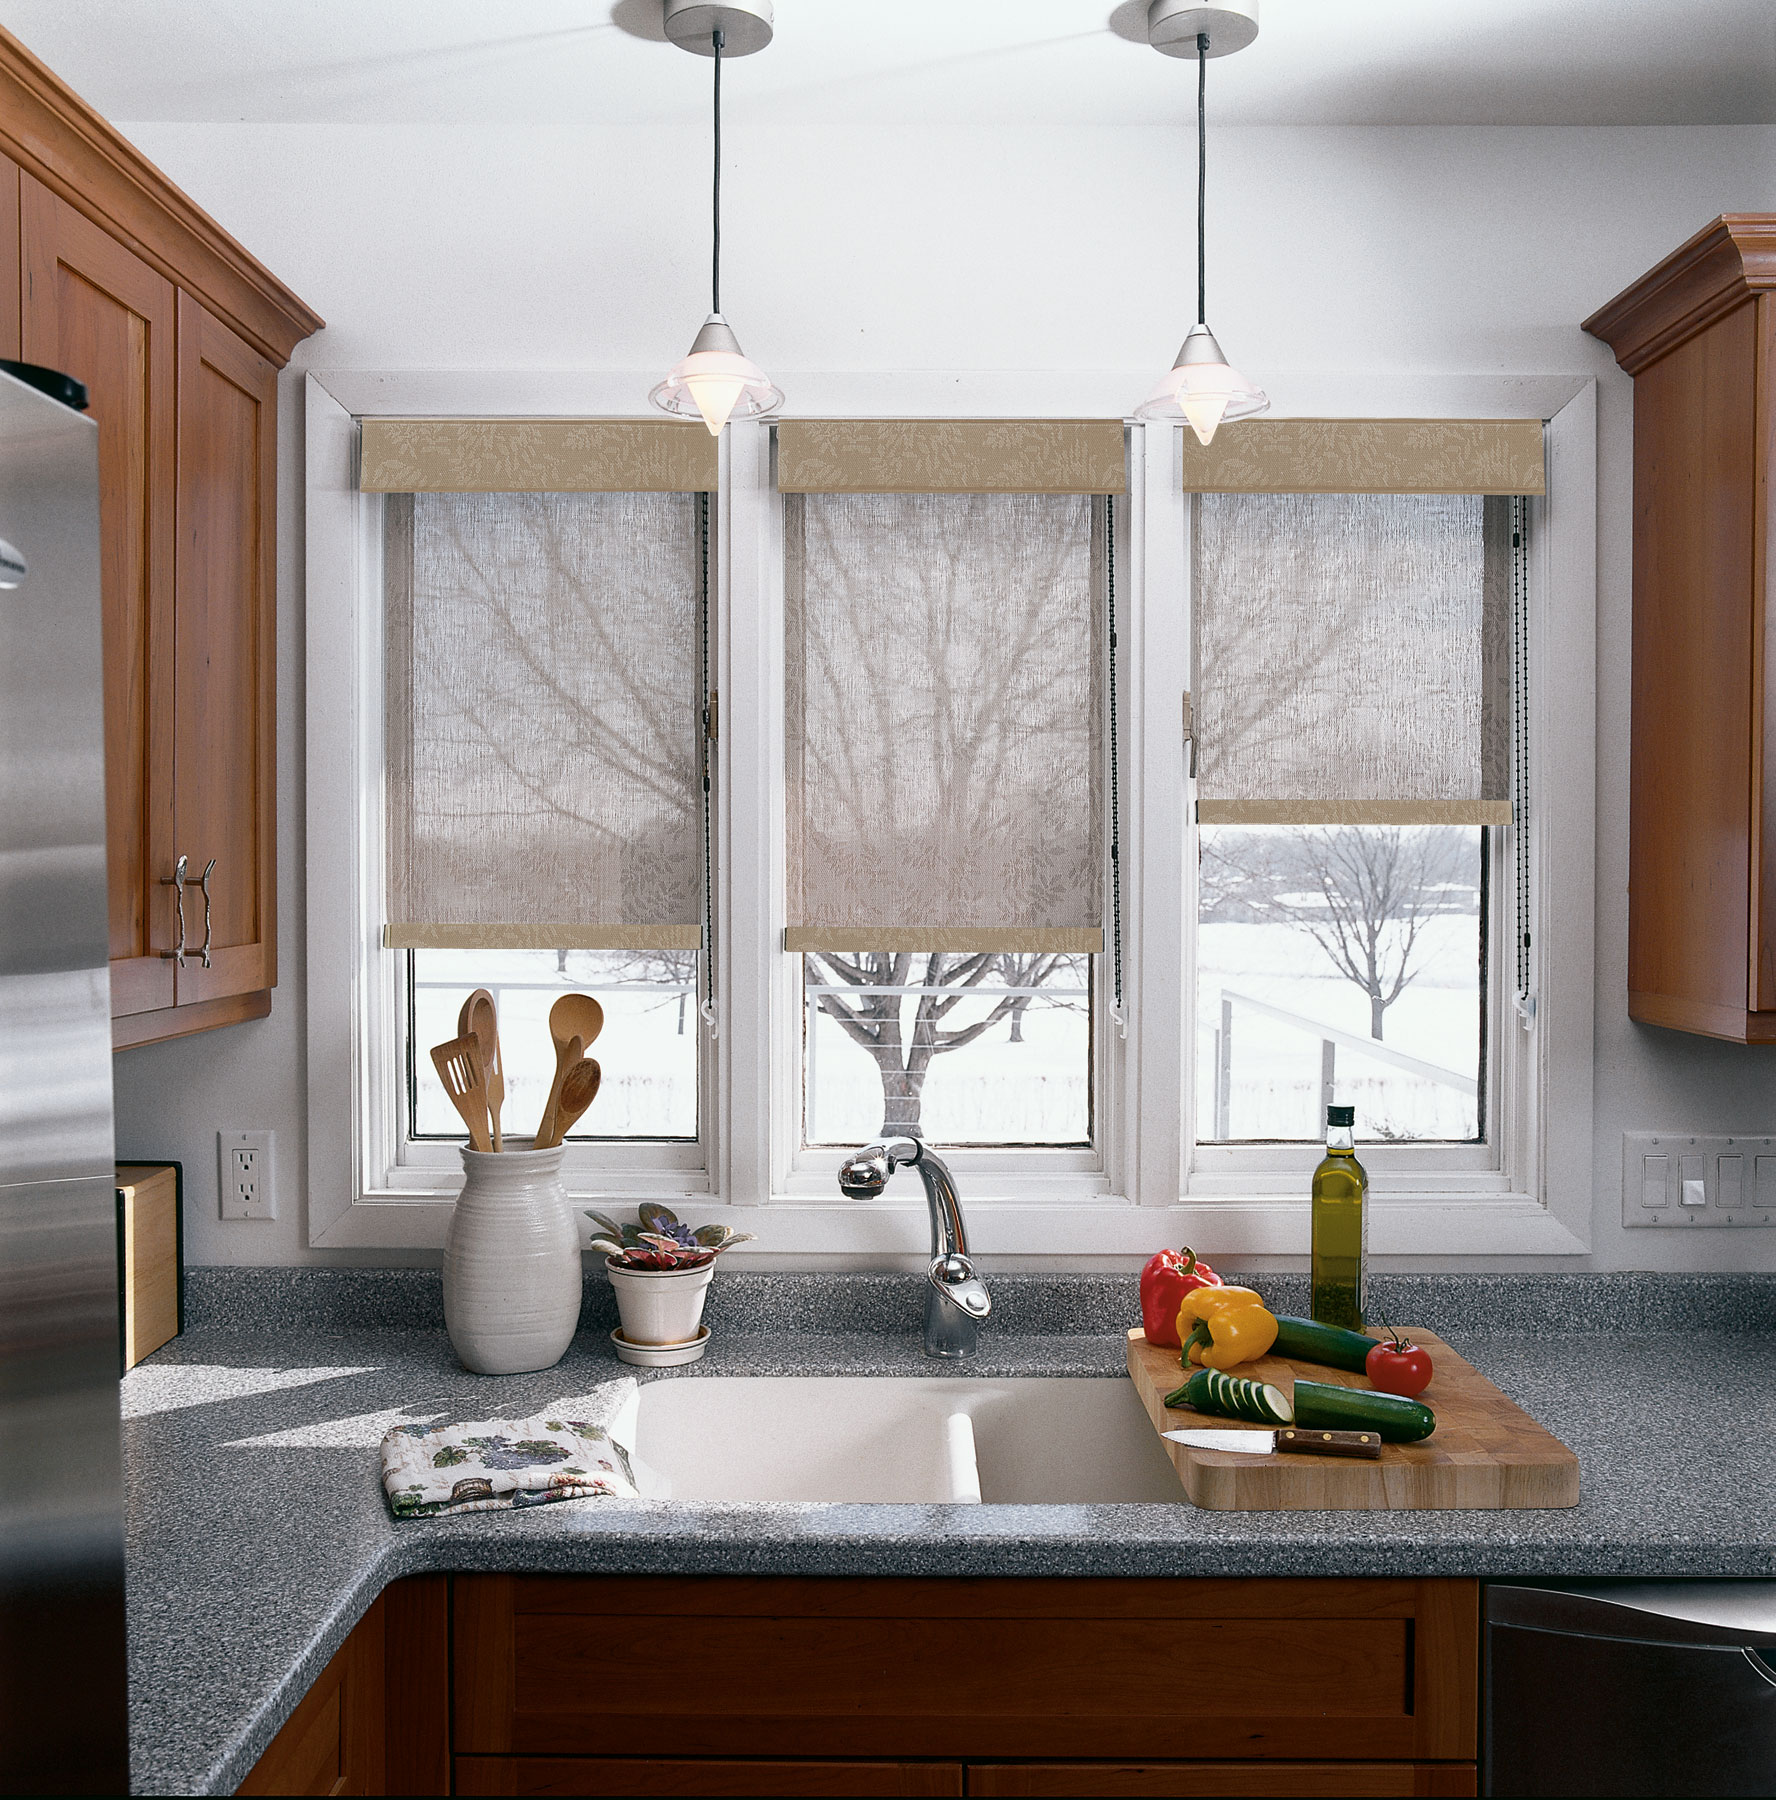 Modern Kitchen Window kitchen window treatment ideas - 3 blind mice window coverings